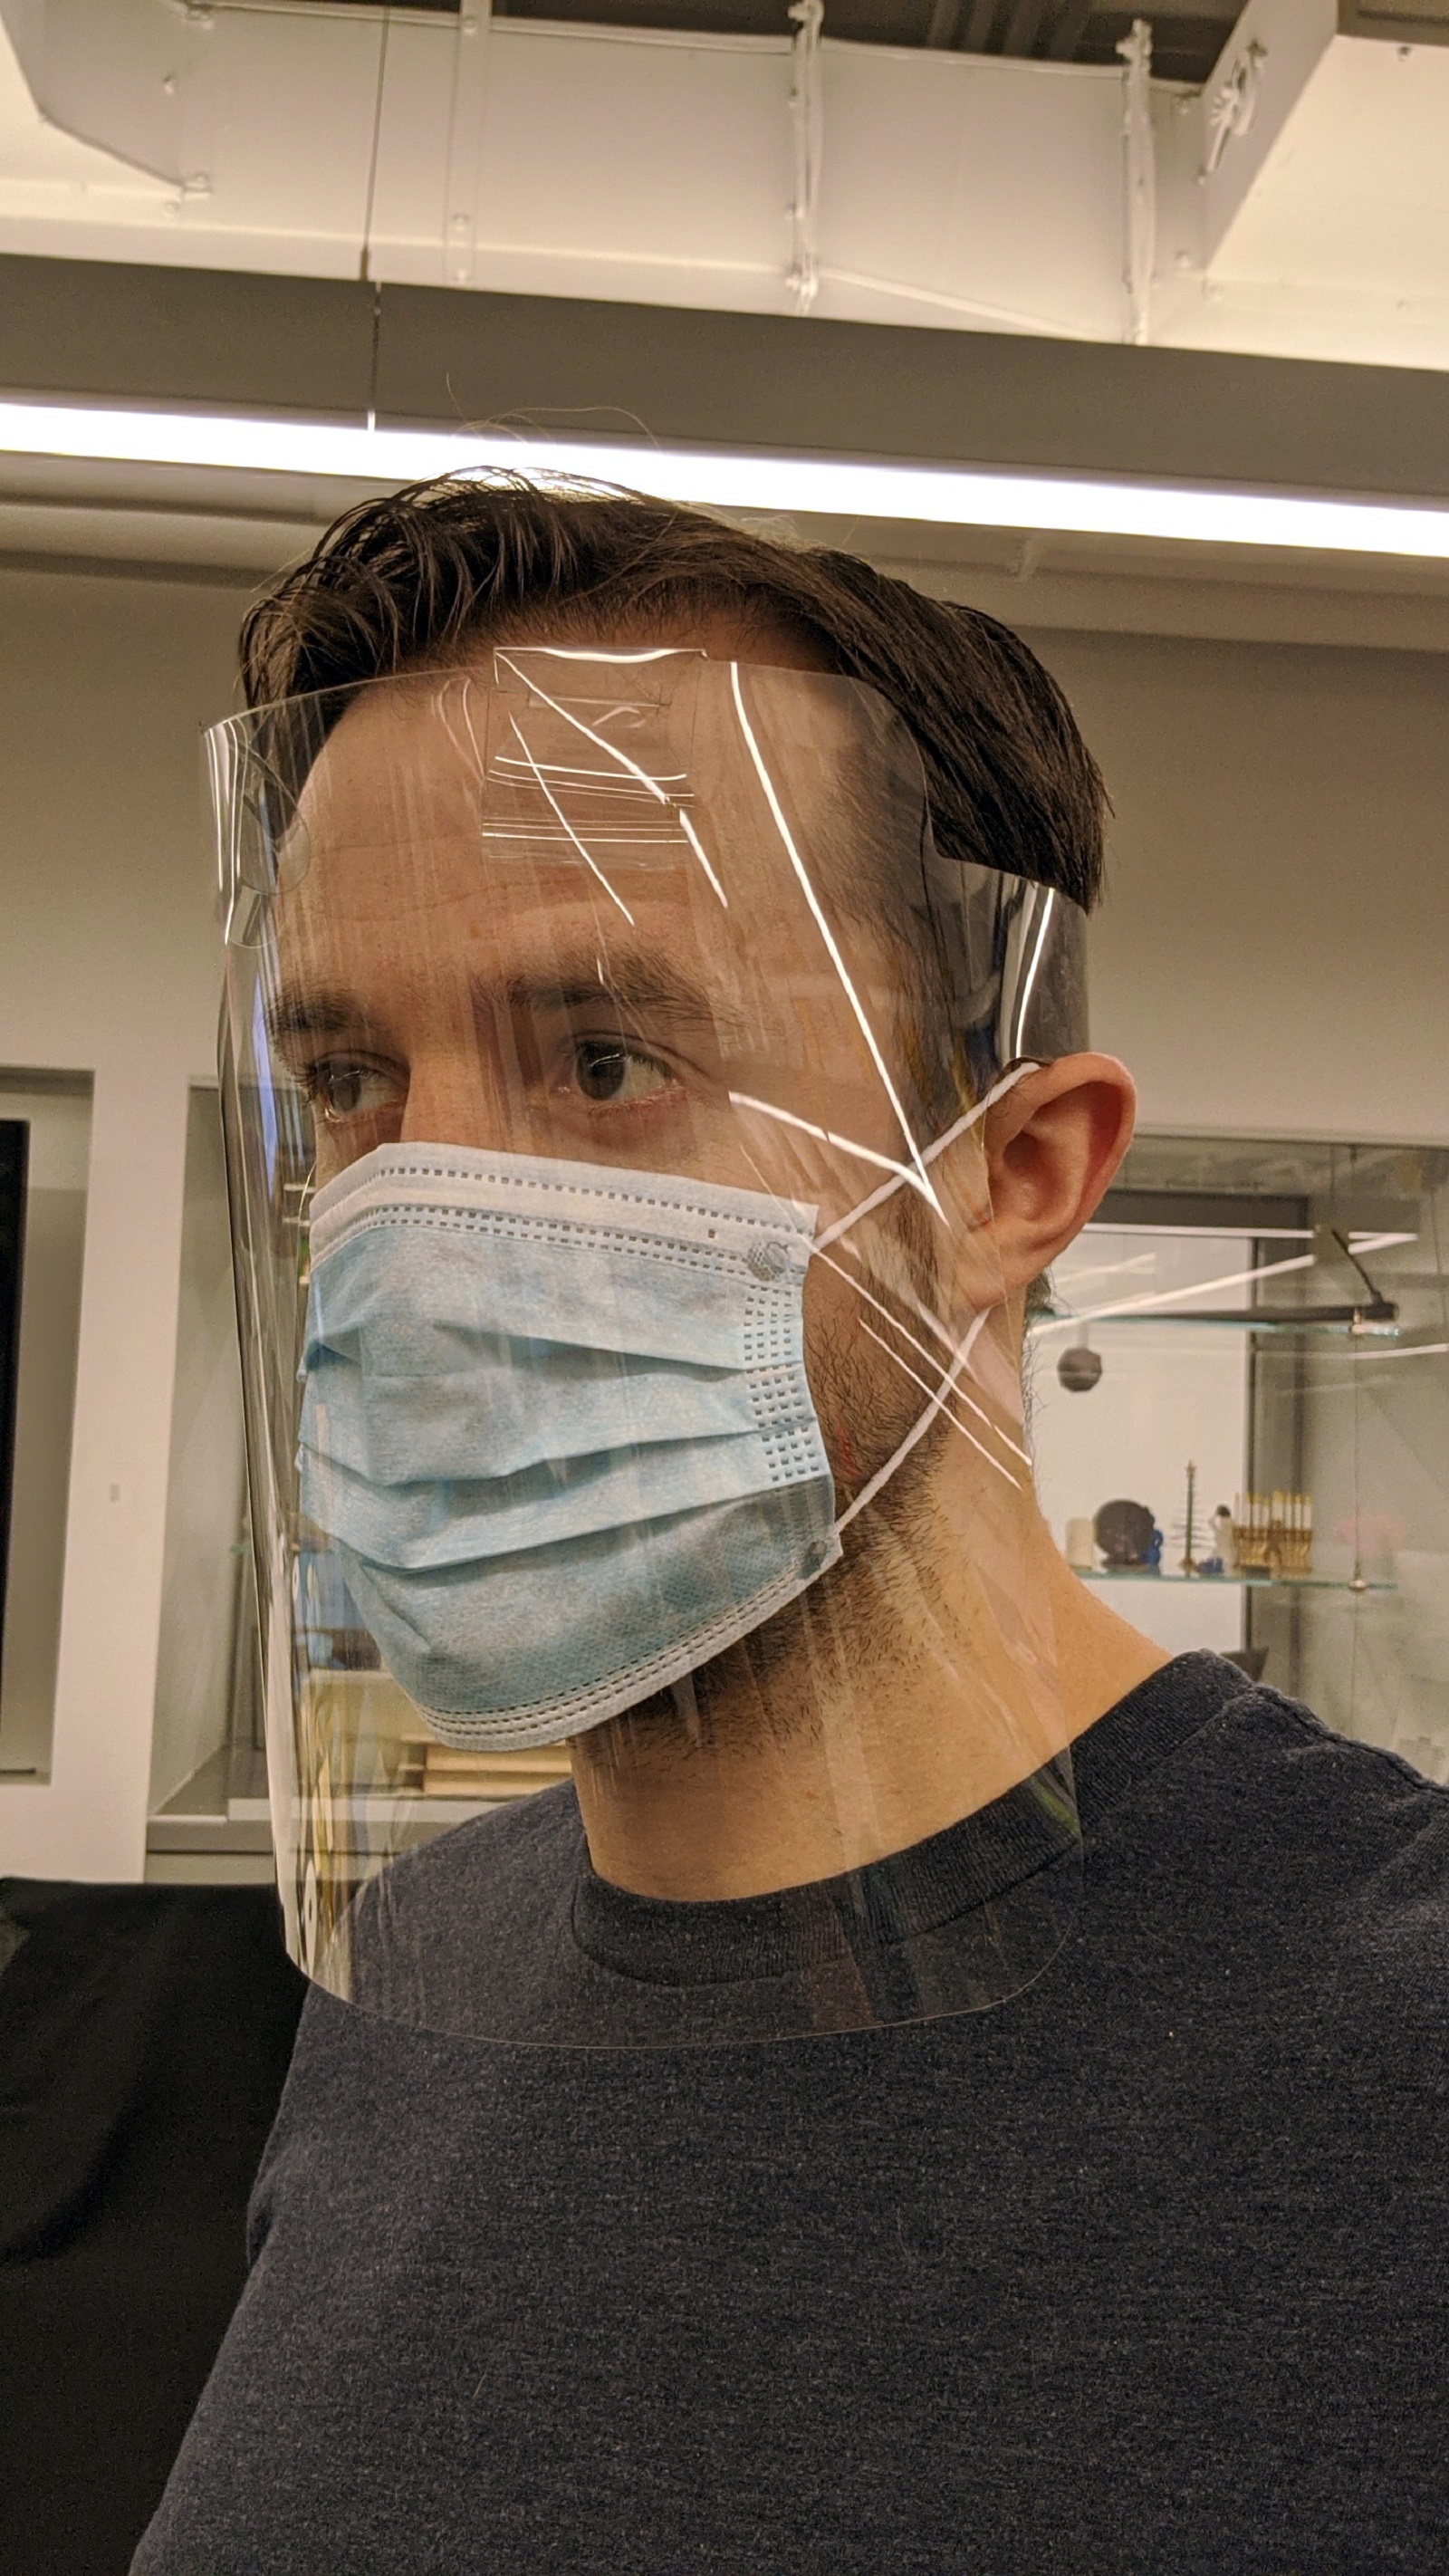 Columbia, Med Center Researchers Team to Produce 1.5M+ Face Shields